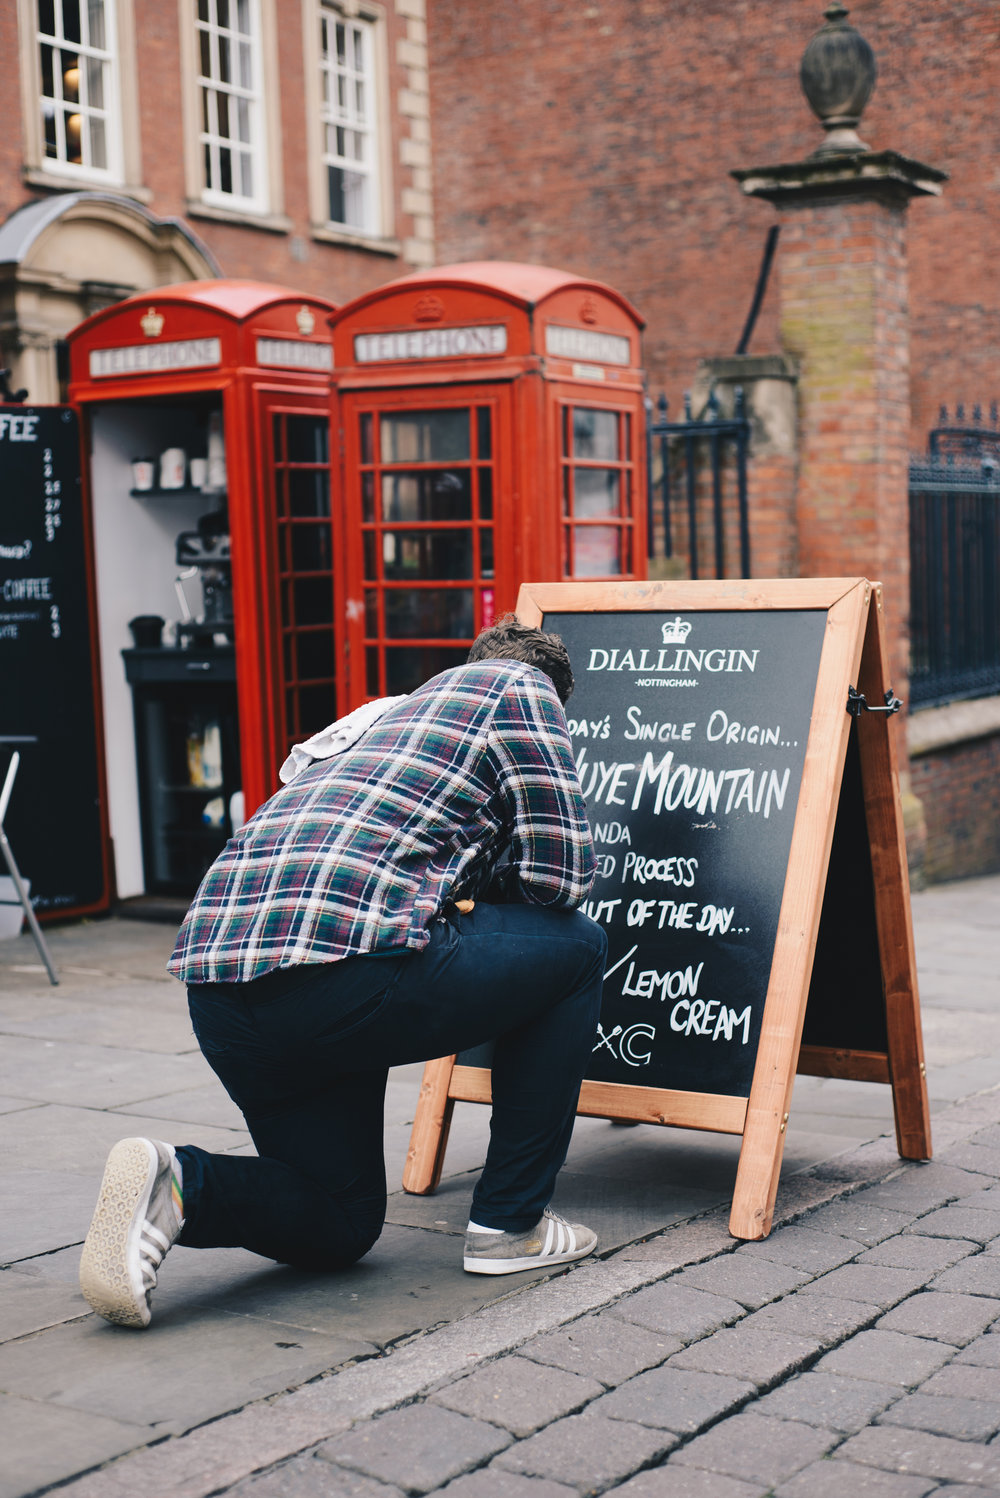 Luke prepares the day's sign during our photoshoot in Nottingham.